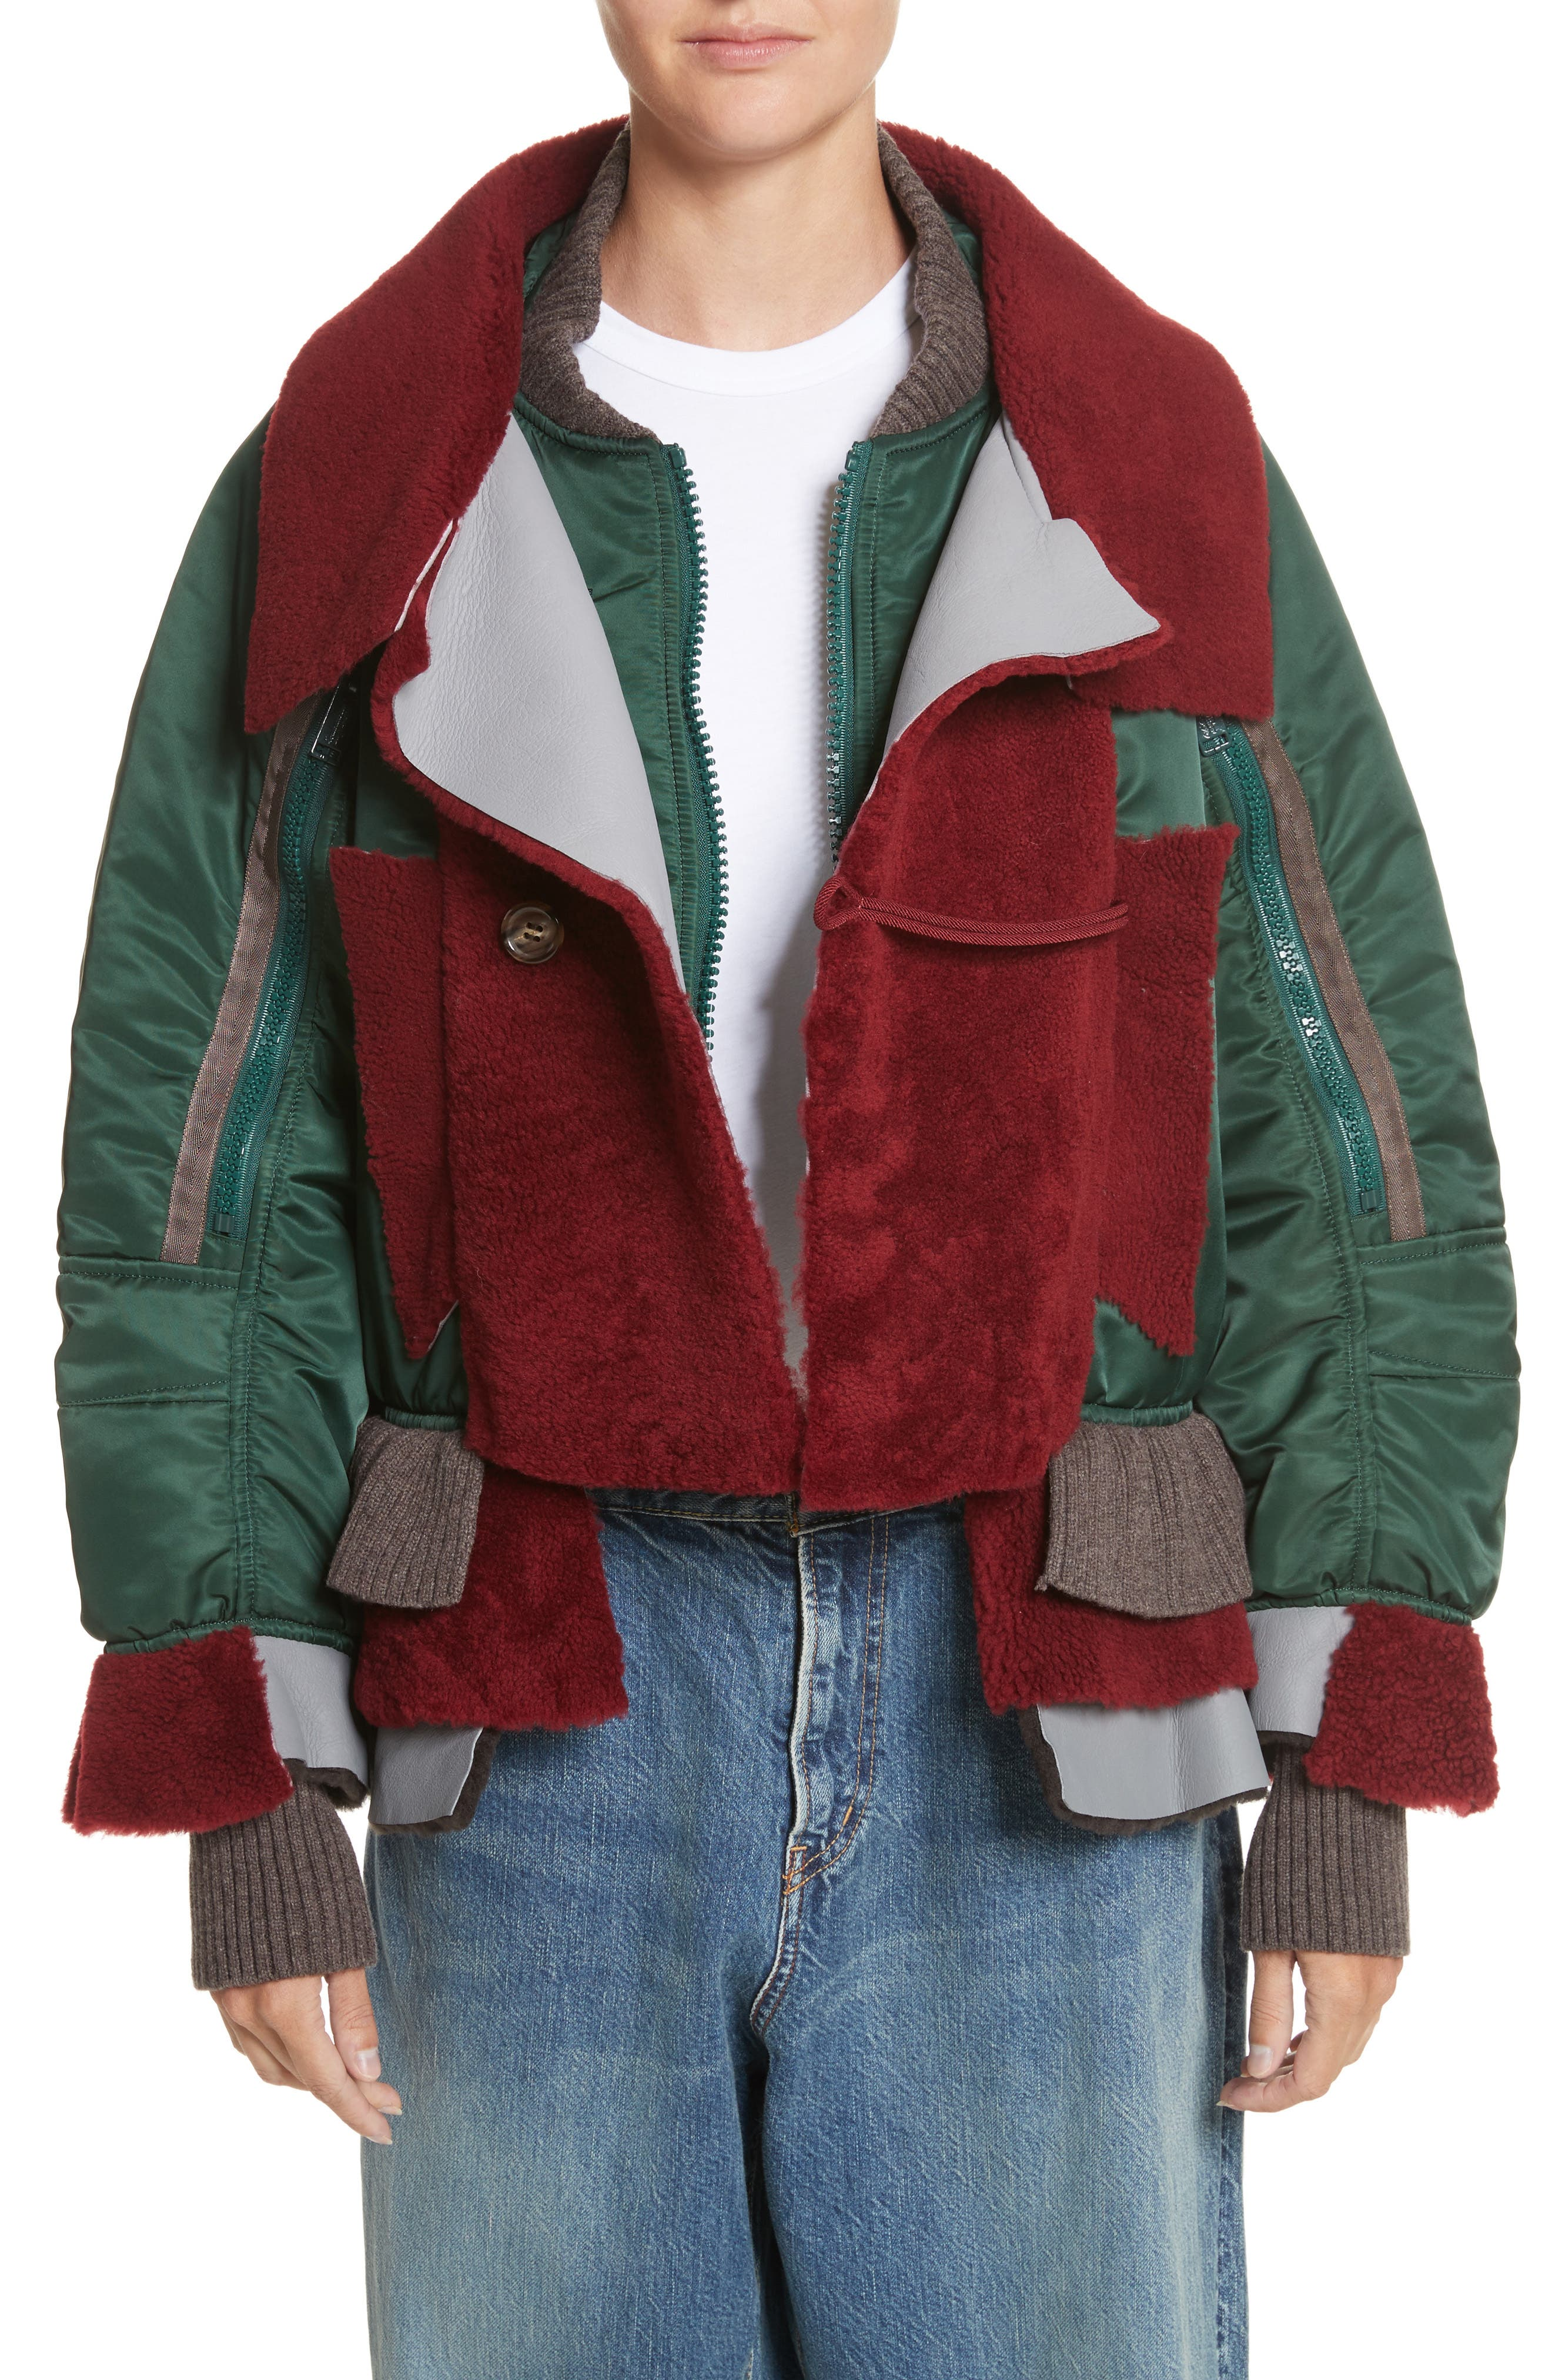 Alternate Image 1 Selected - Undercover Mixed Media Bomber Jacket with Genuine Shearling Trim